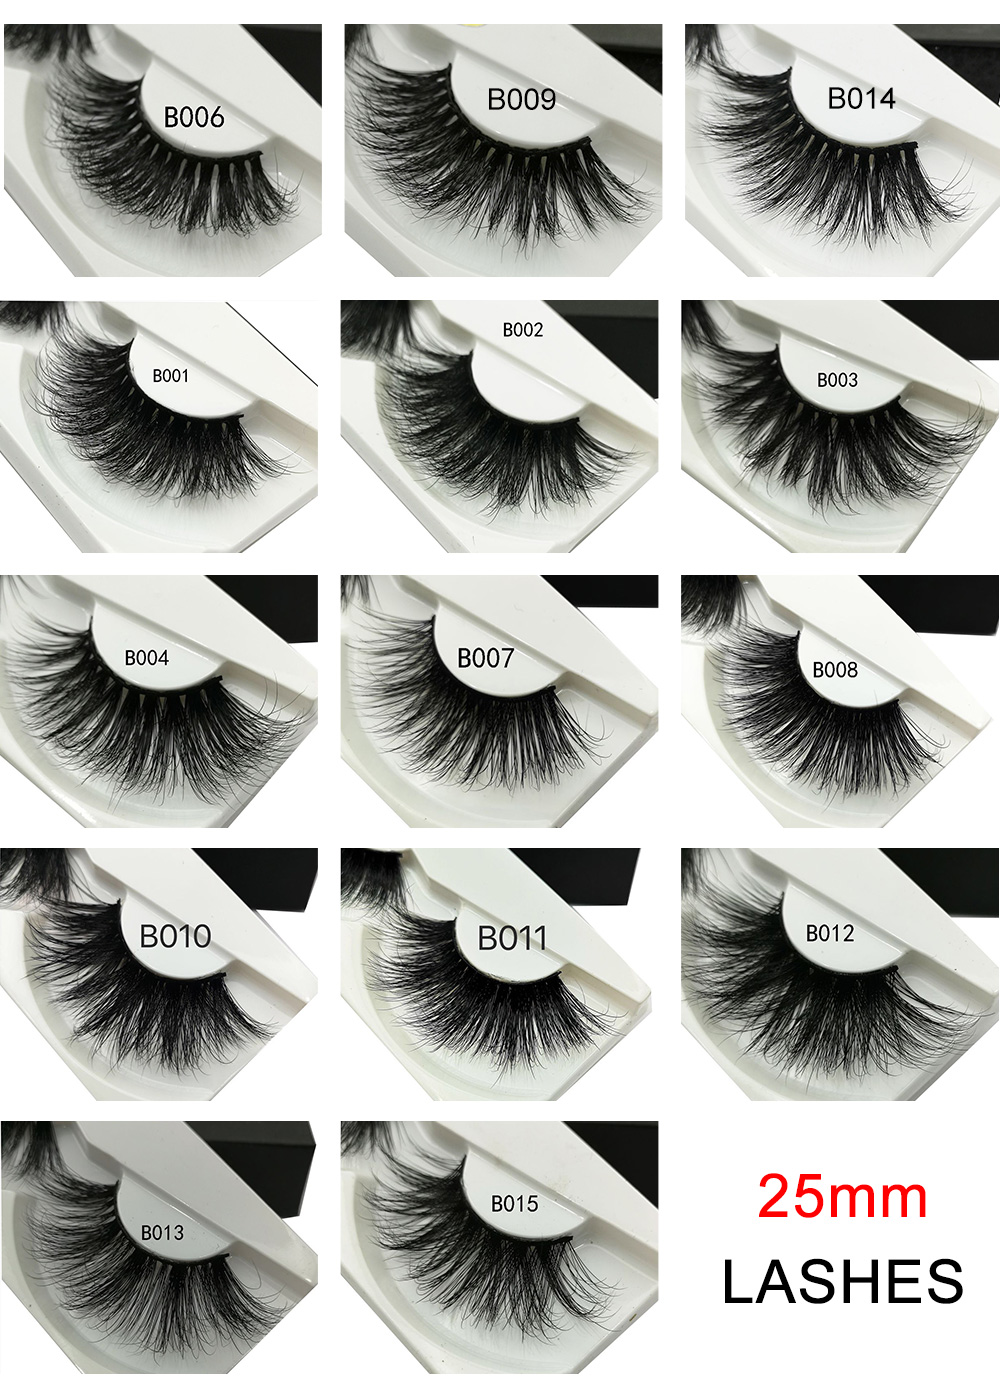 Worldwide delivery 100 pairs 3d mink lashes wholesale in